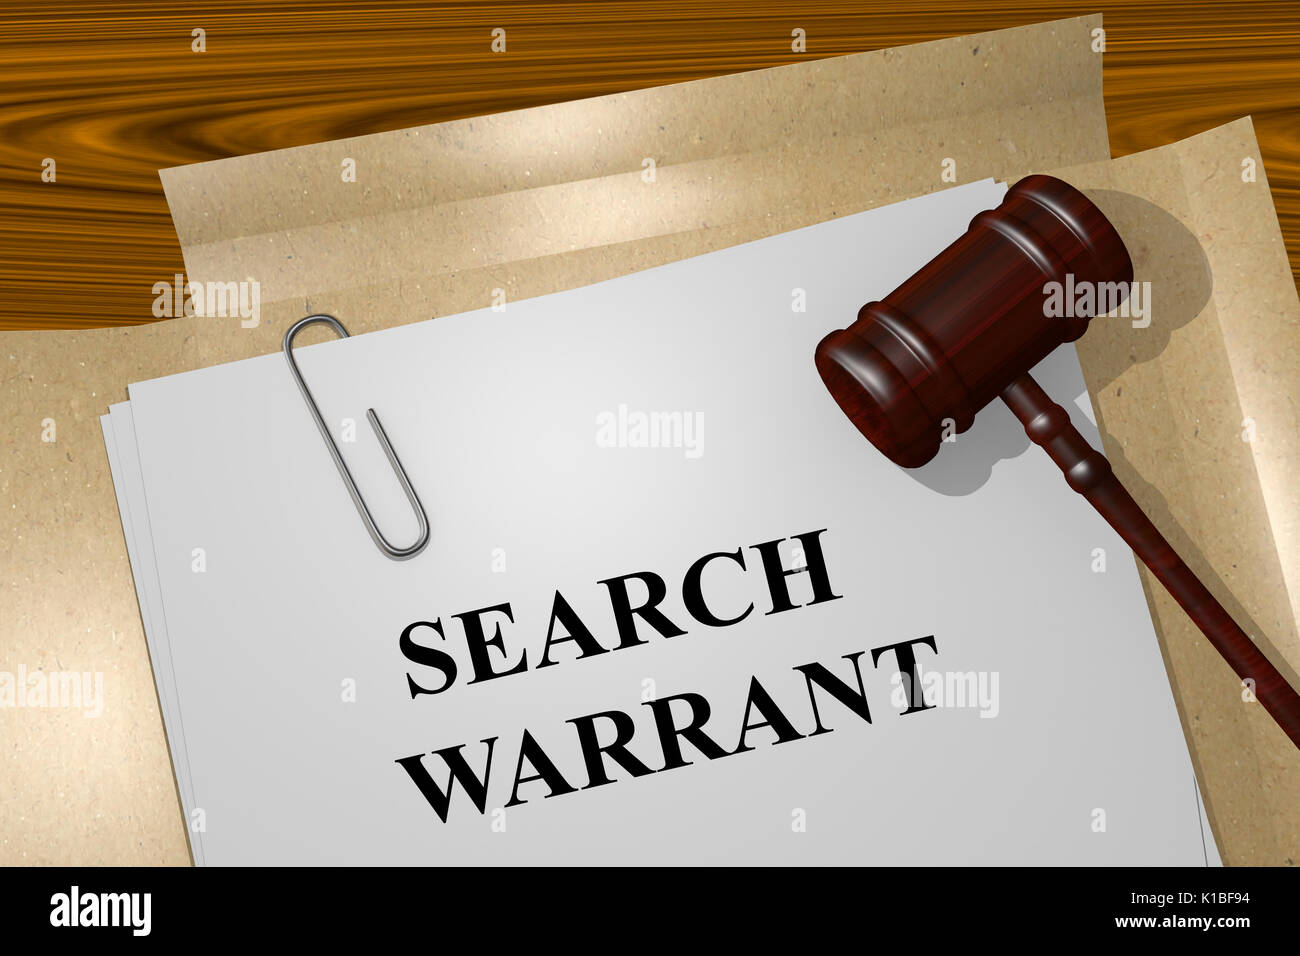 Render illustration of Search Warrant Title On Legal Documents - Stock Image